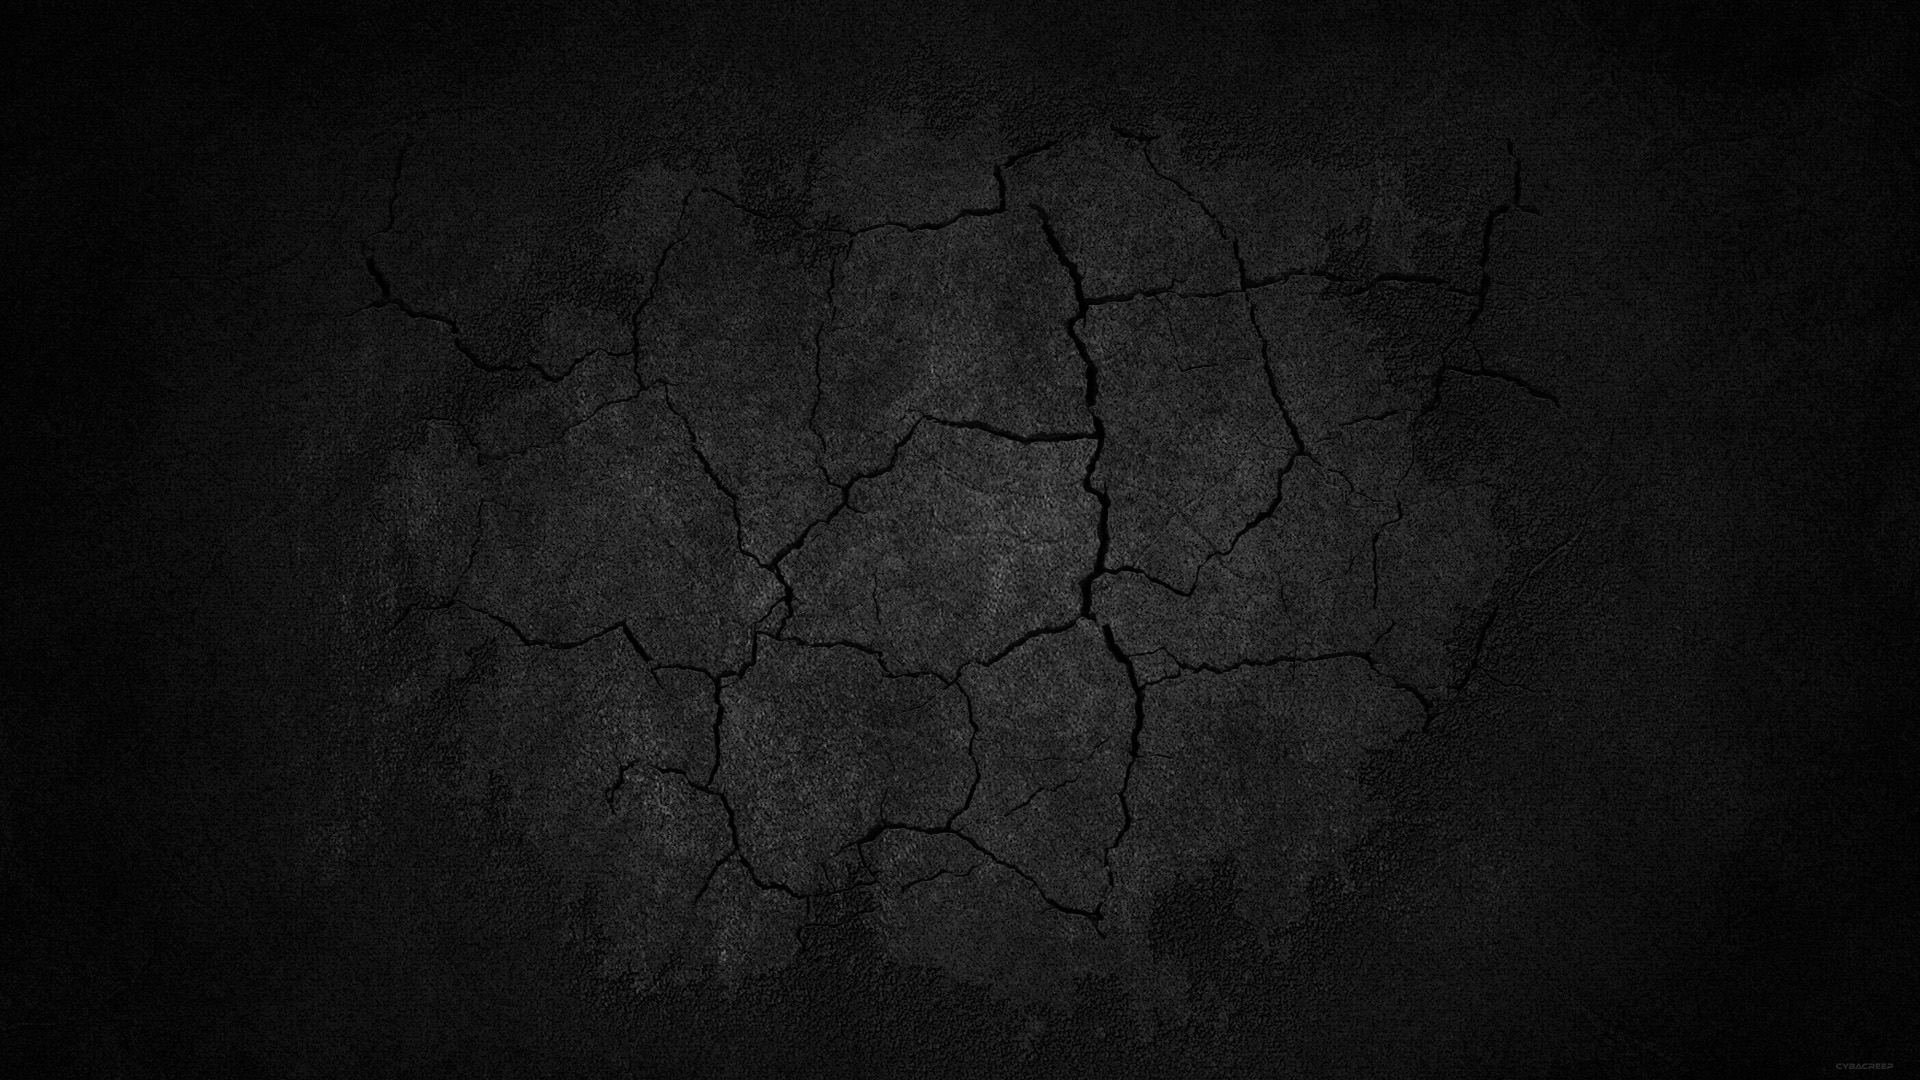 background cracked dark texture - photo #35